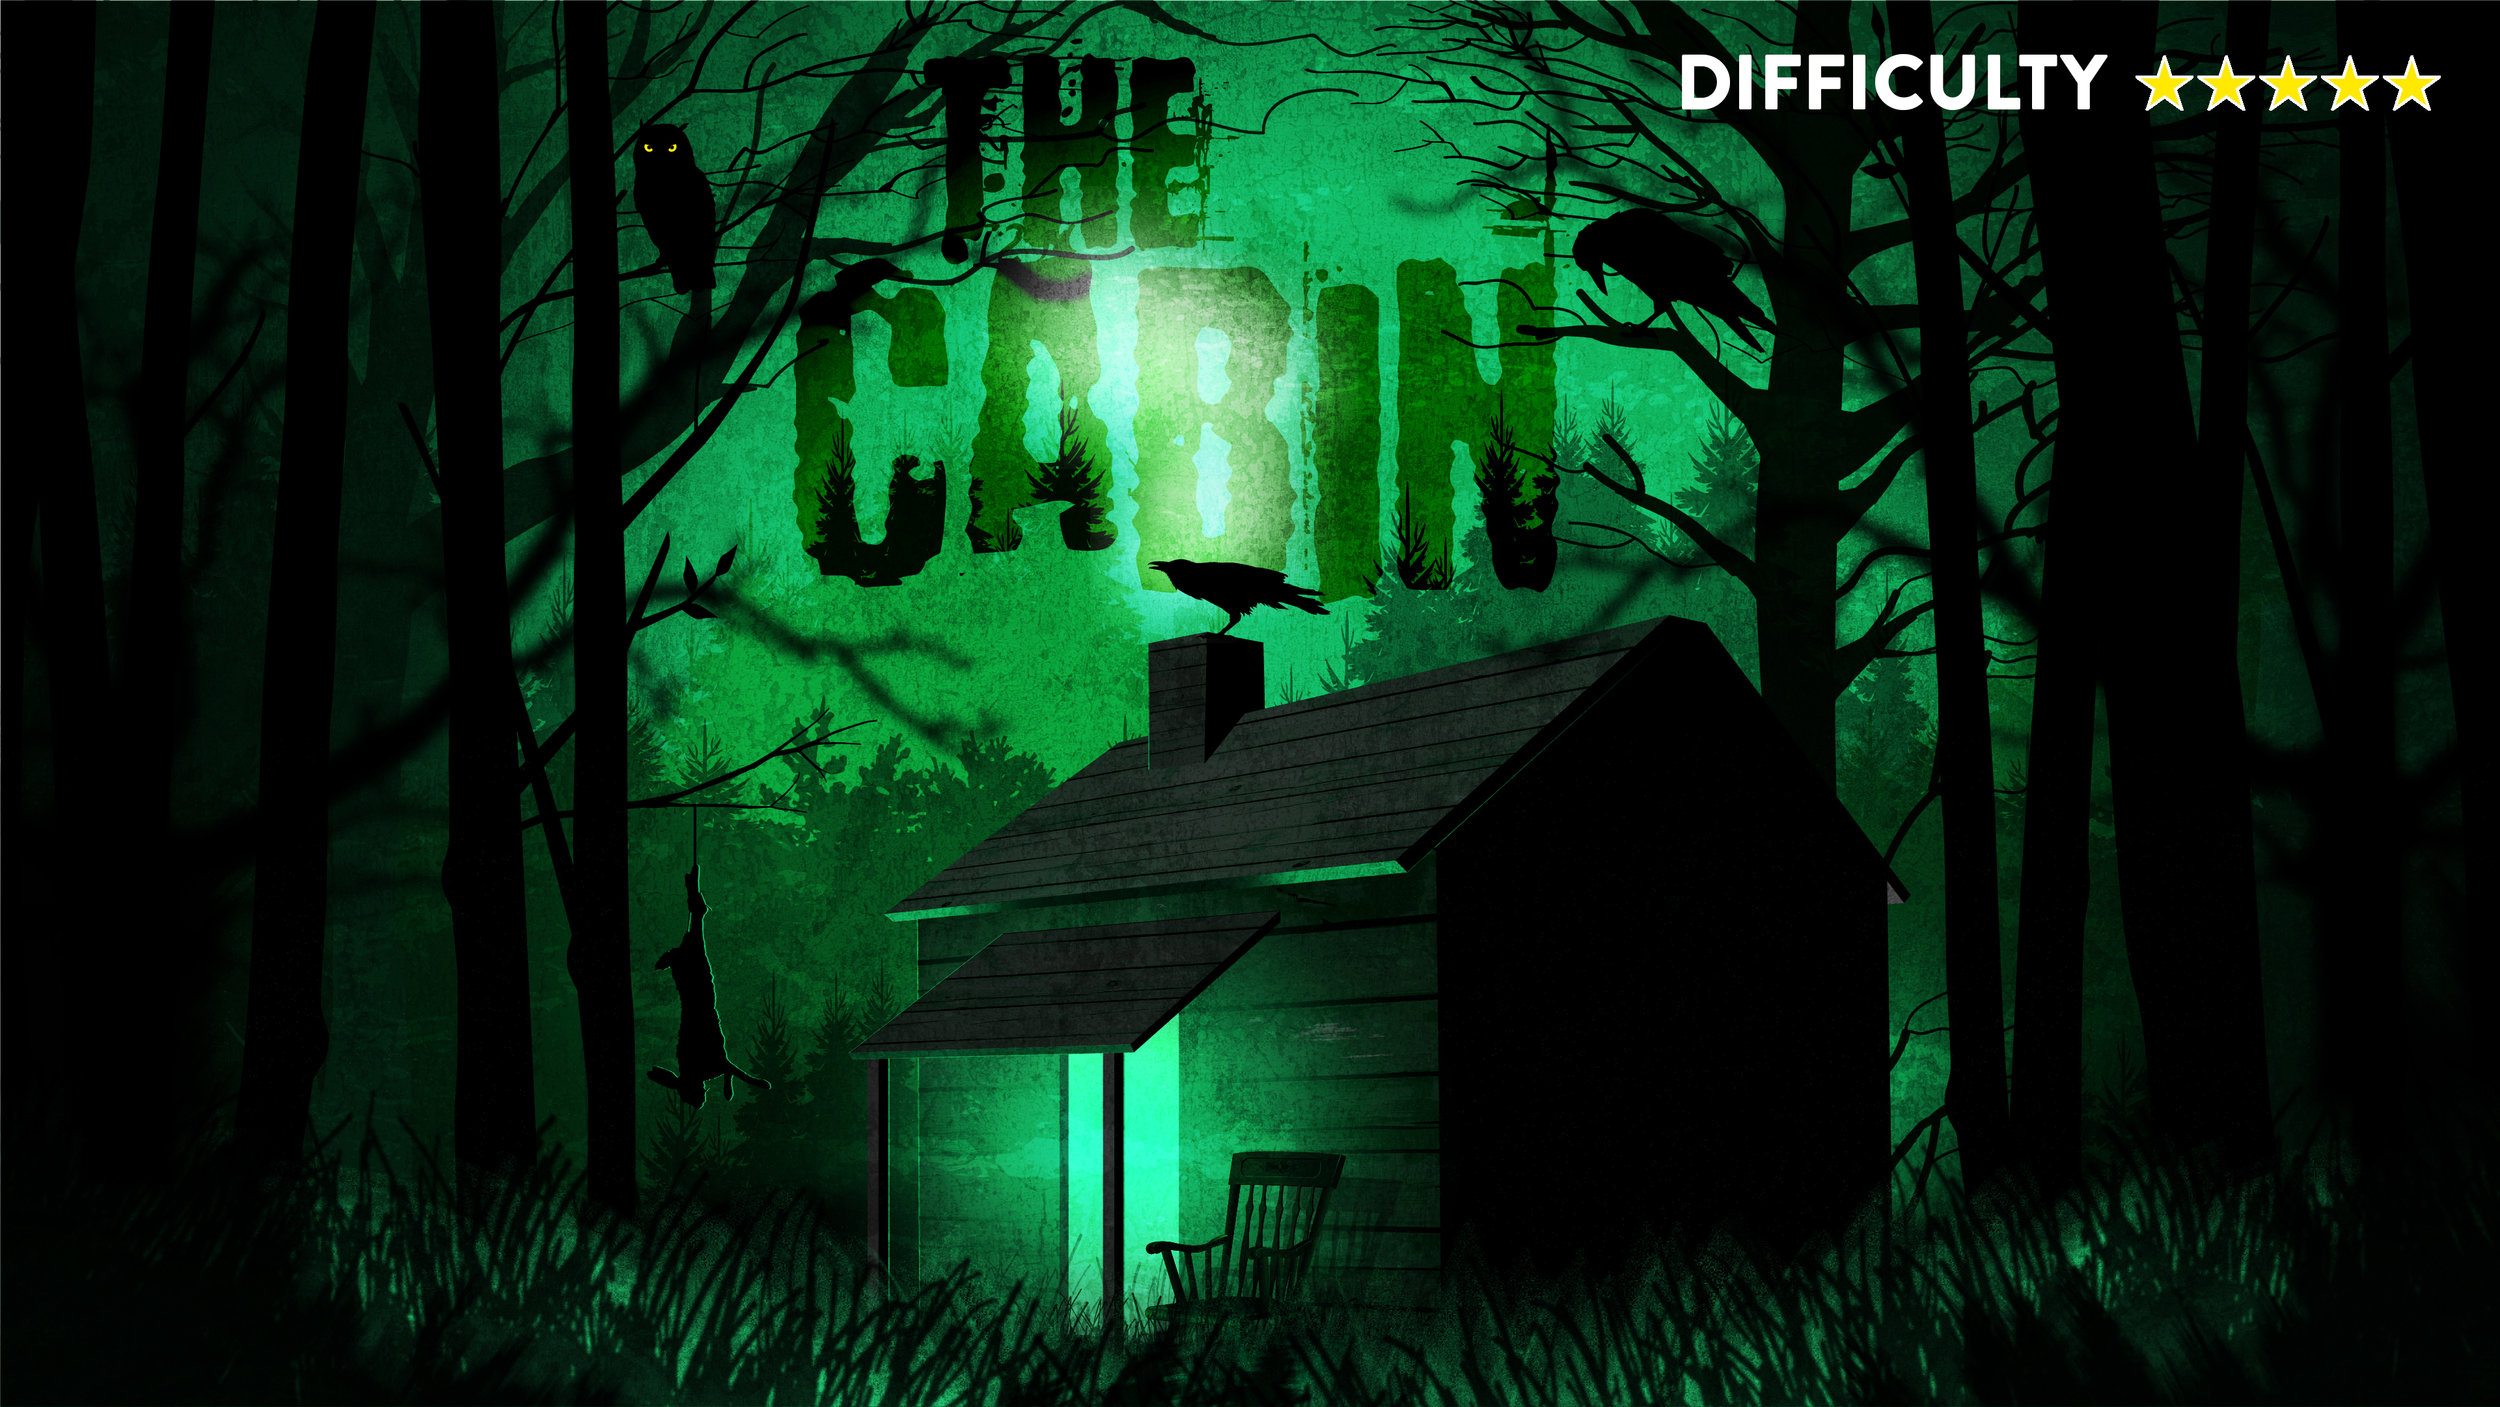 cabin with difficulty.jpg